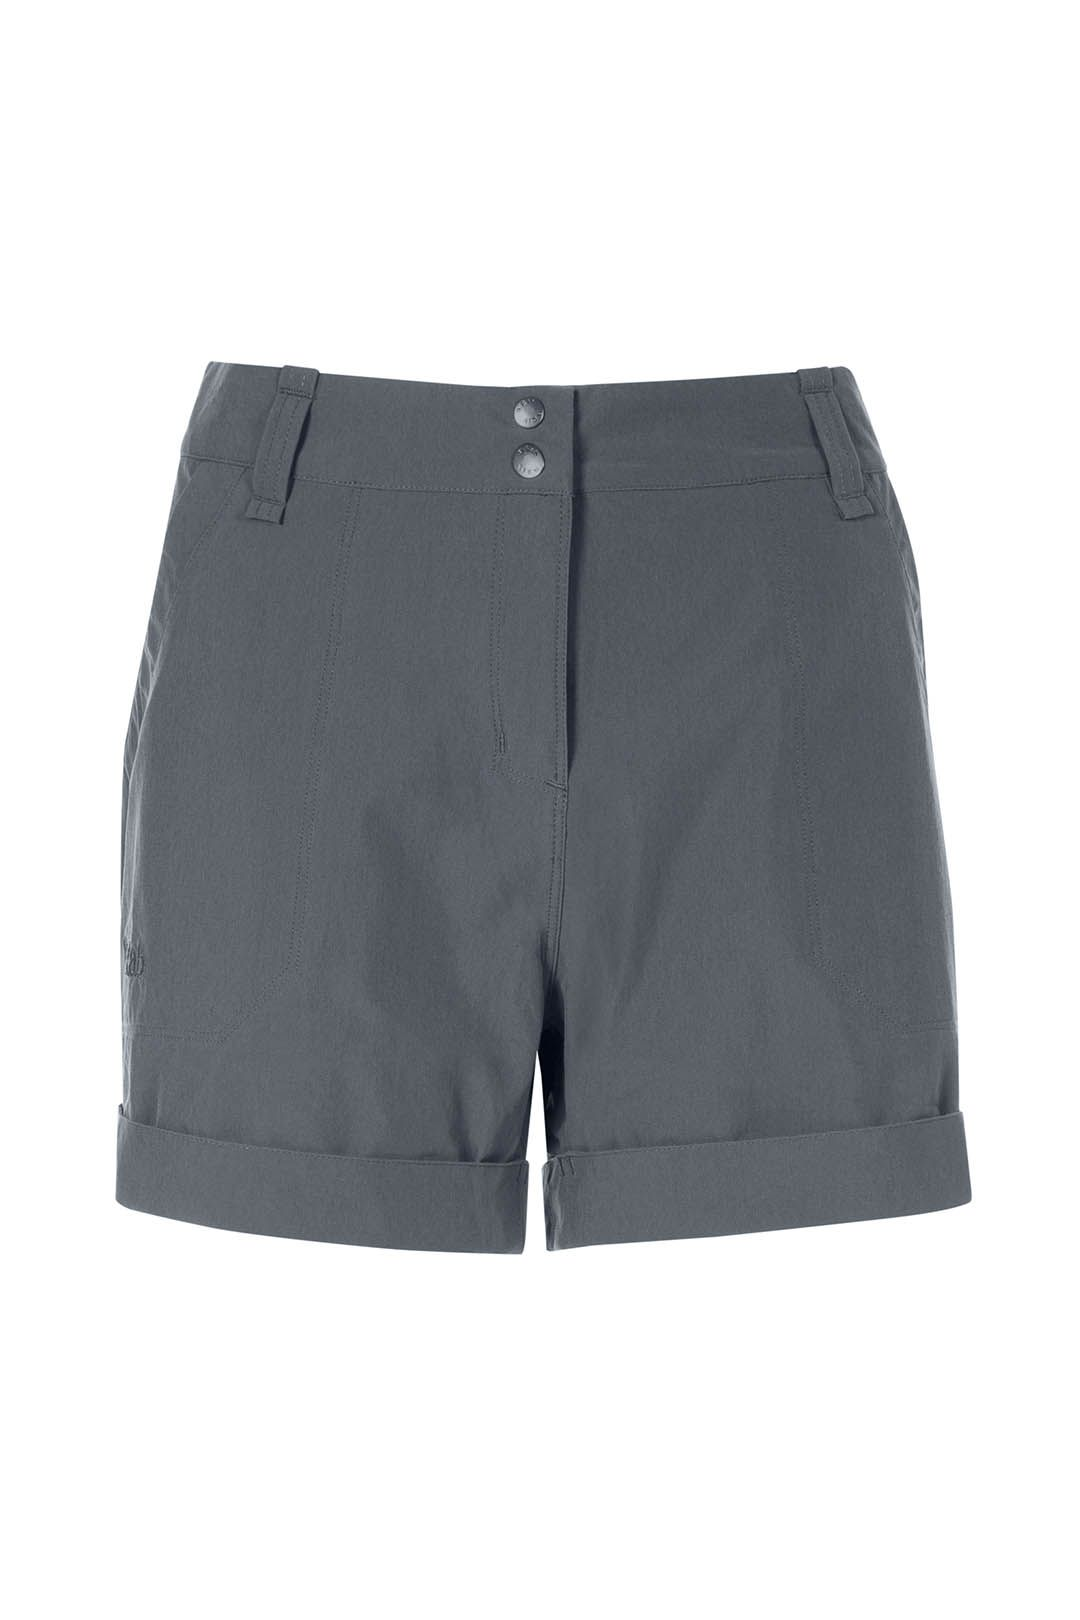 Rab Helix Shorts Womens Graphene